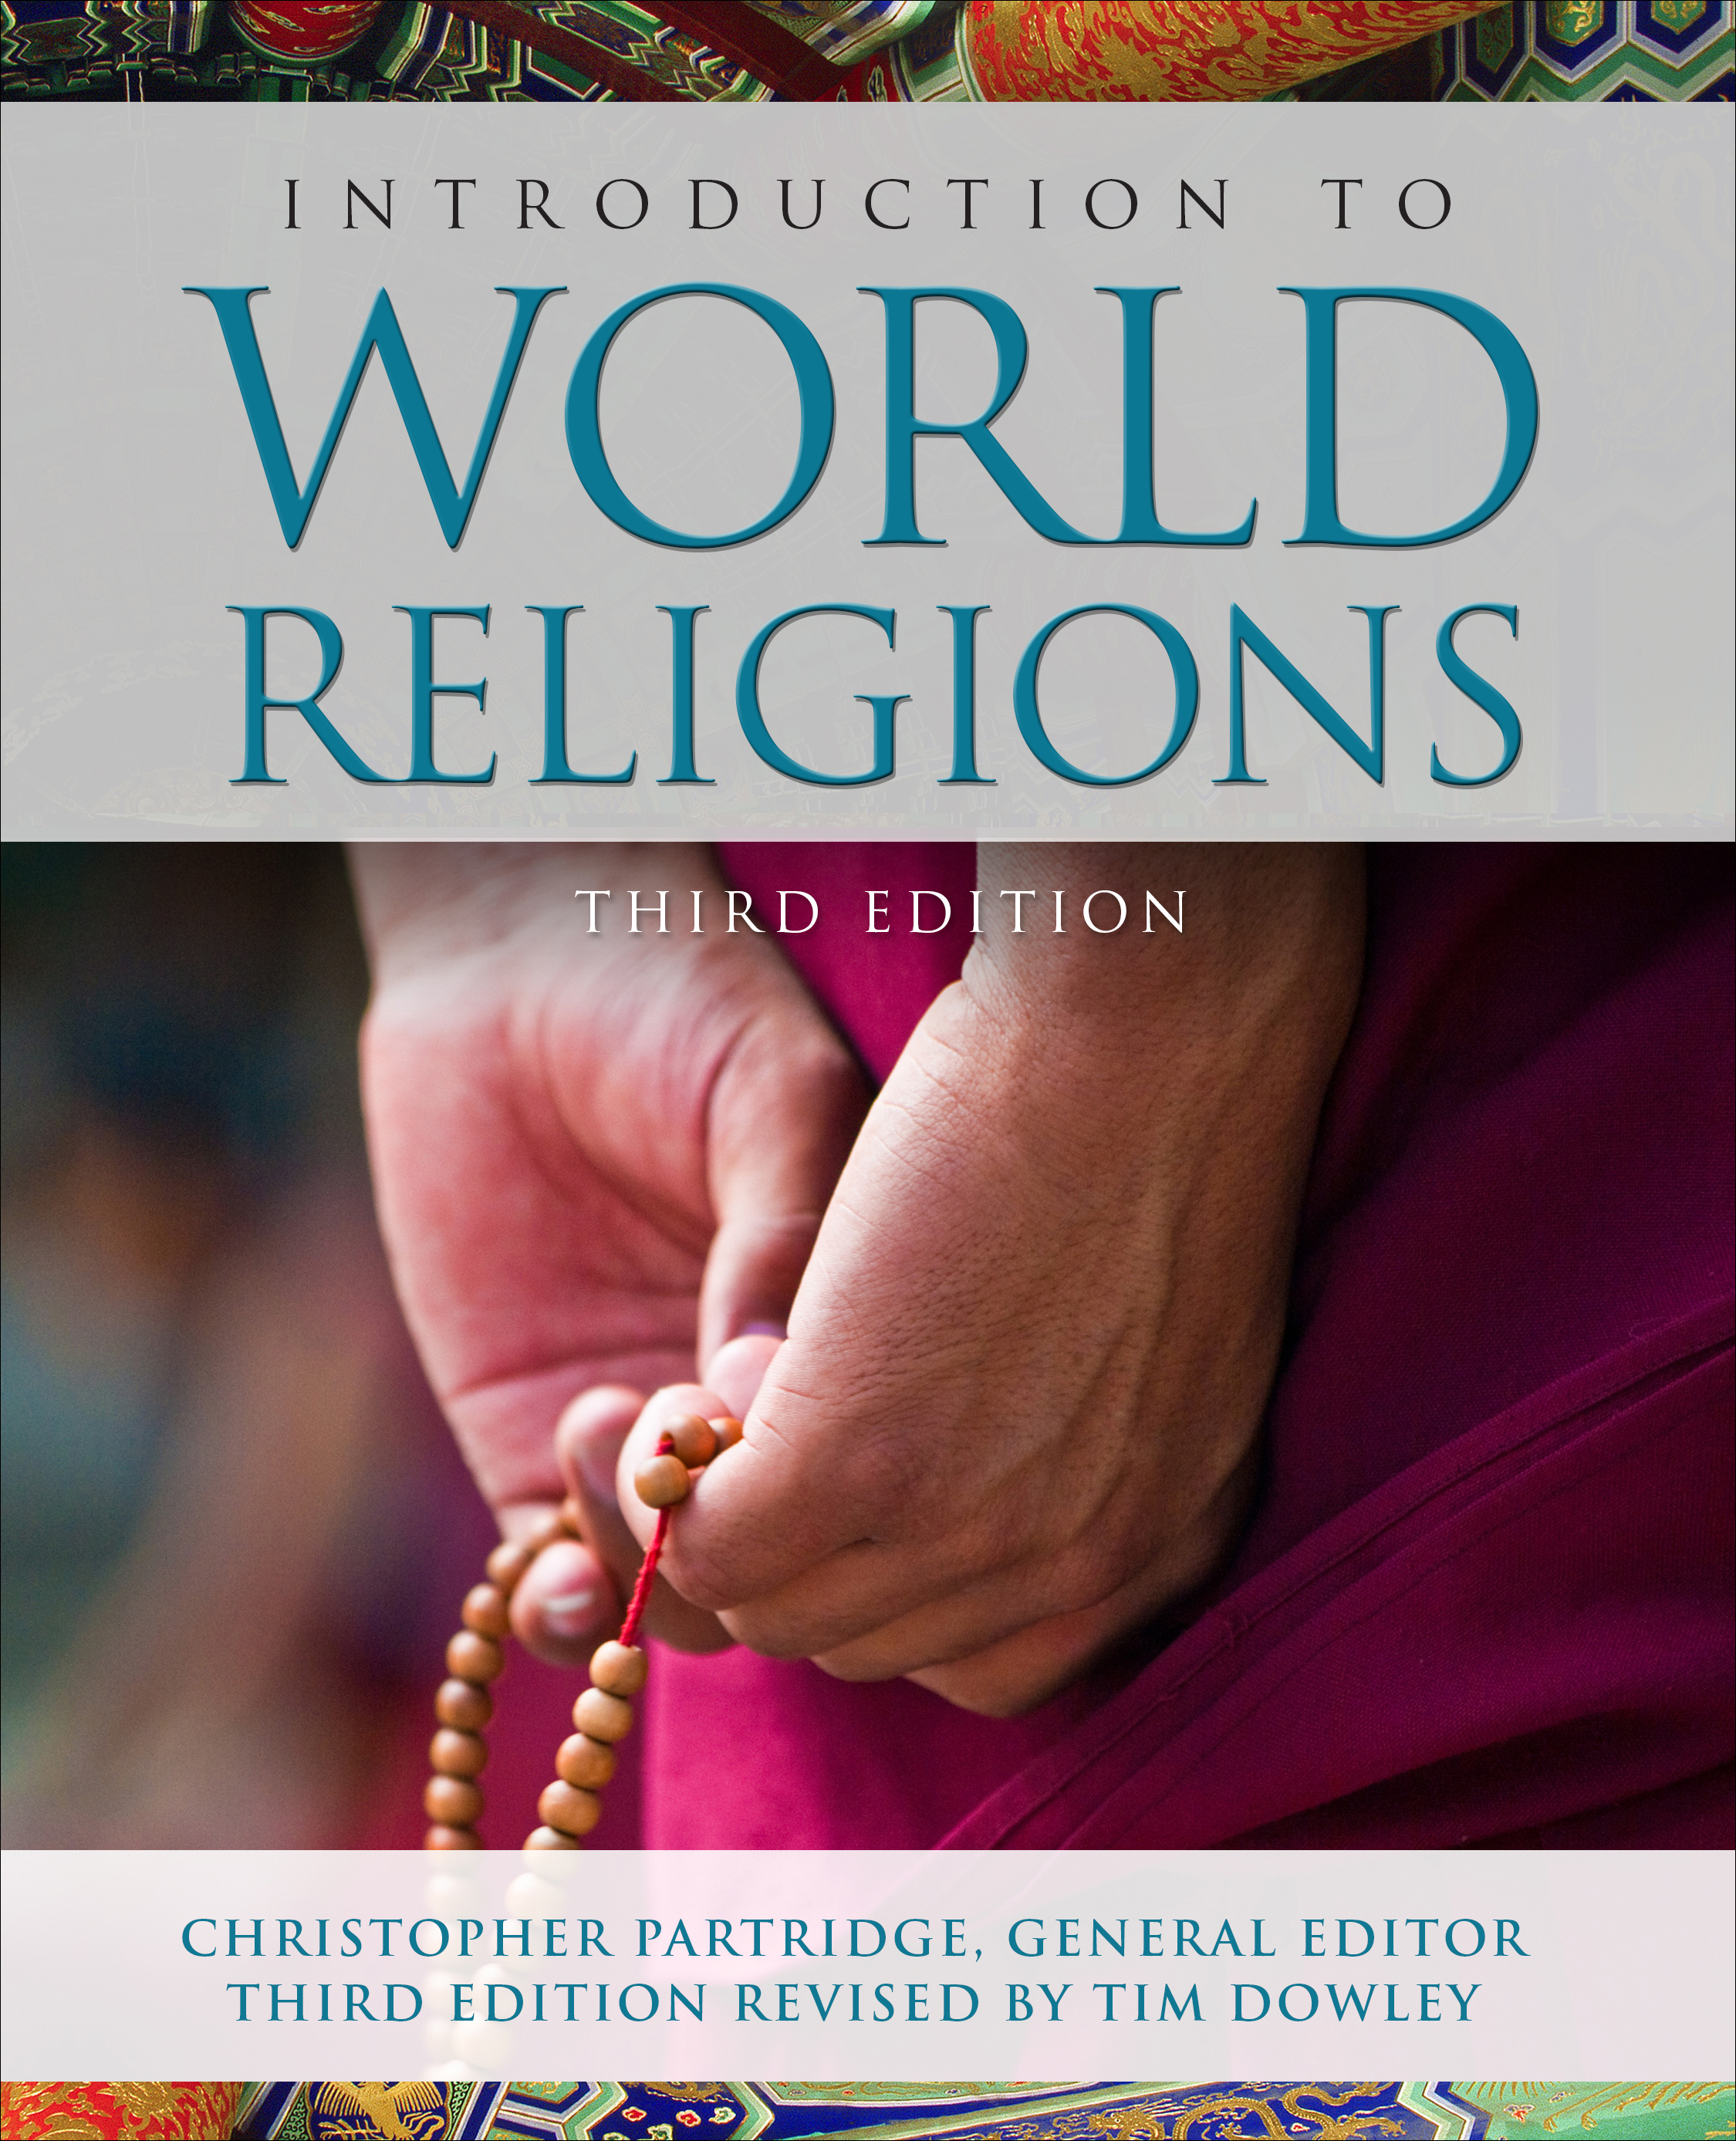 The cover to the book Introduction to World Religions, Third Edition; General Editor, Christopher Partridge; Third Edition Revised by Tim Dowley